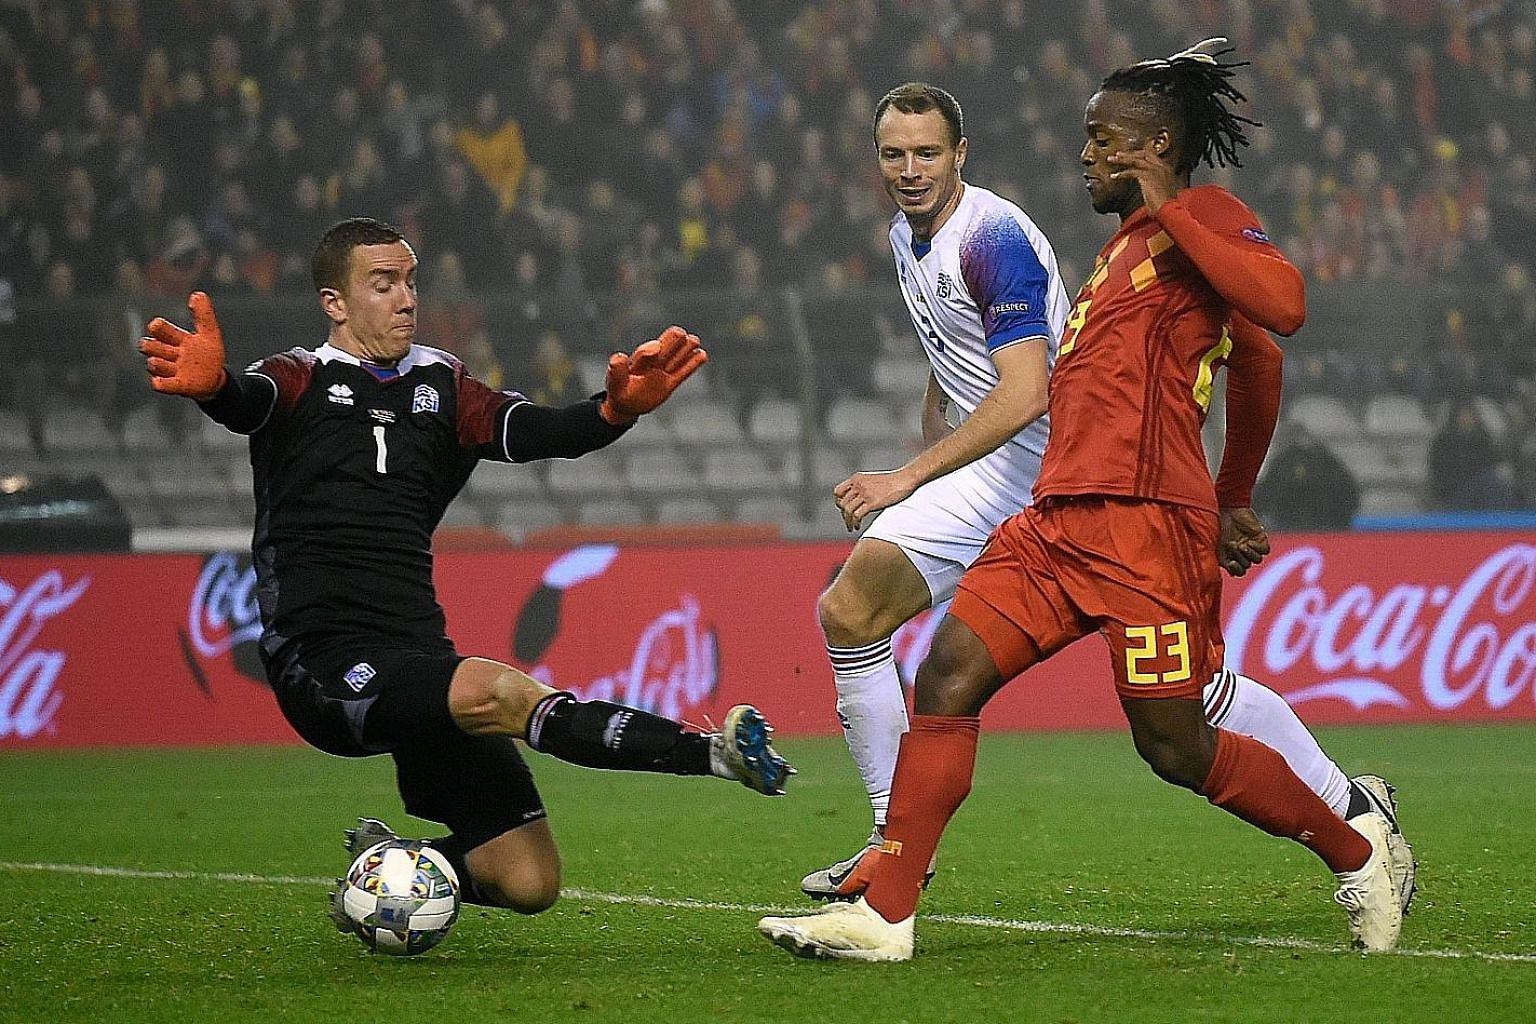 Michy Batshuayi, seen scoring his second, made the most of compatriot Romelu Lukaku's absence with both goals in Thursday's Nations League win over Iceland.